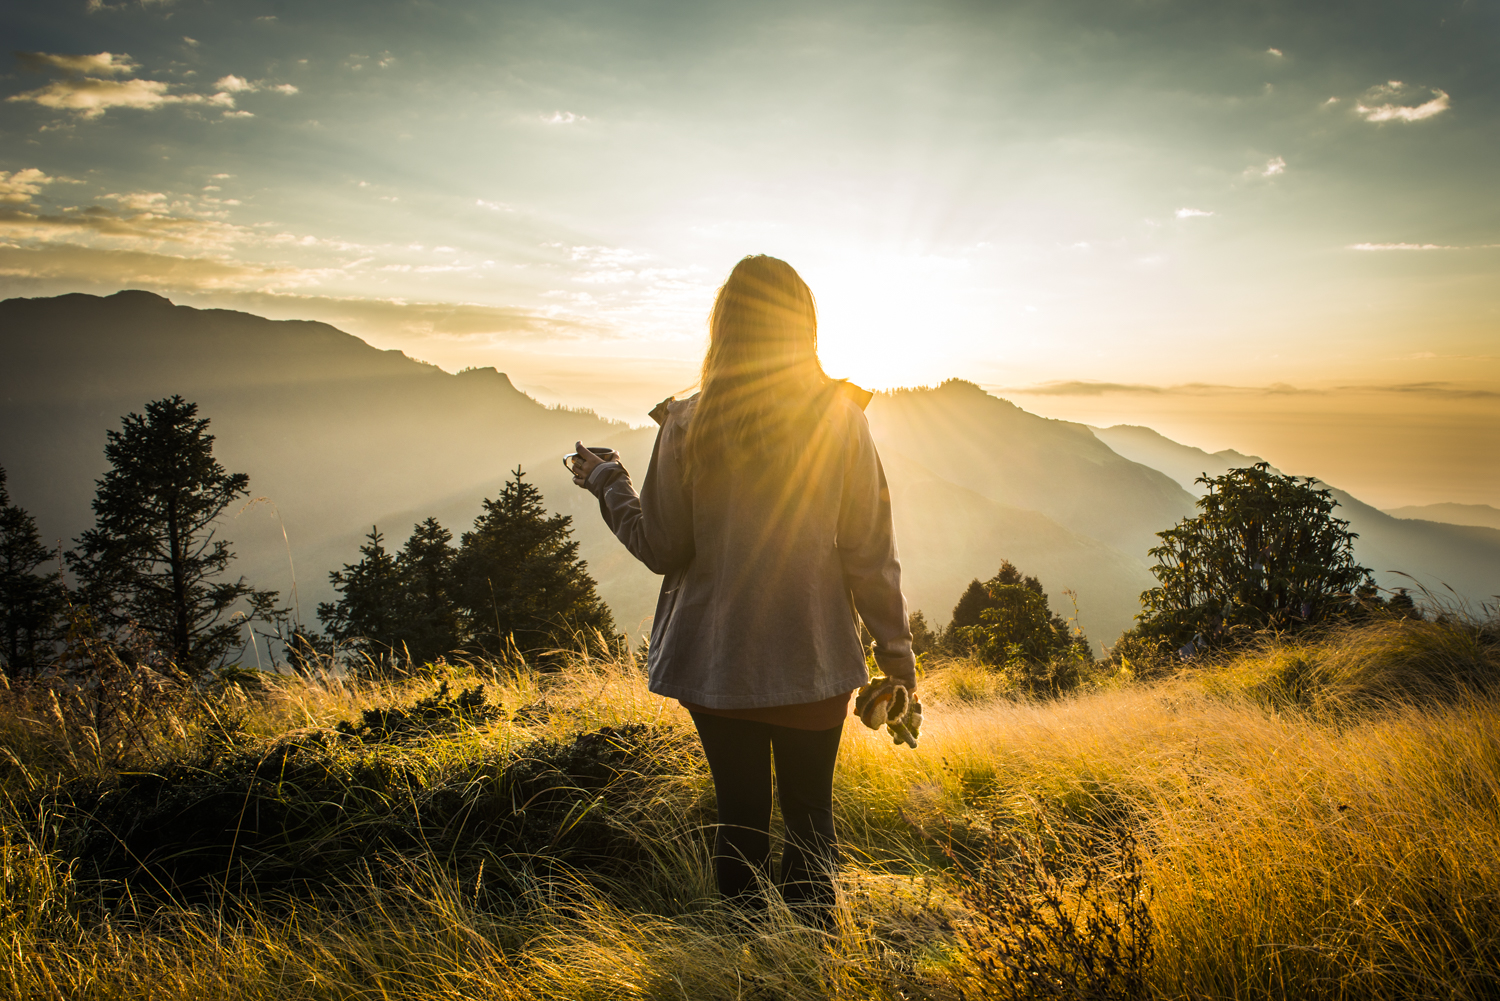 Sunrise at poon hill, Nepal